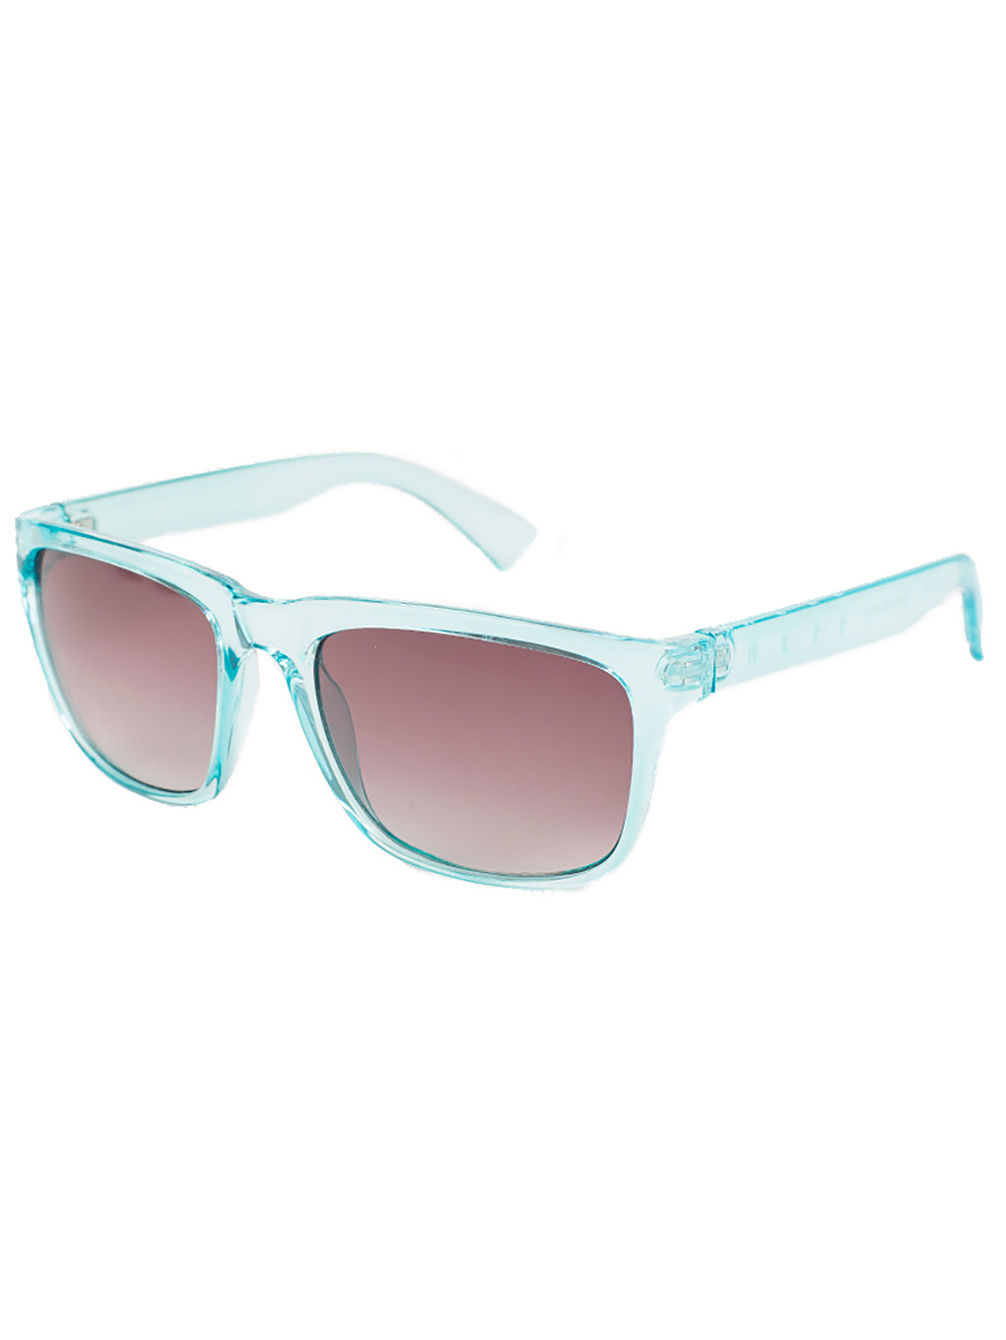 Chip Mint Ice Sonnenbrille